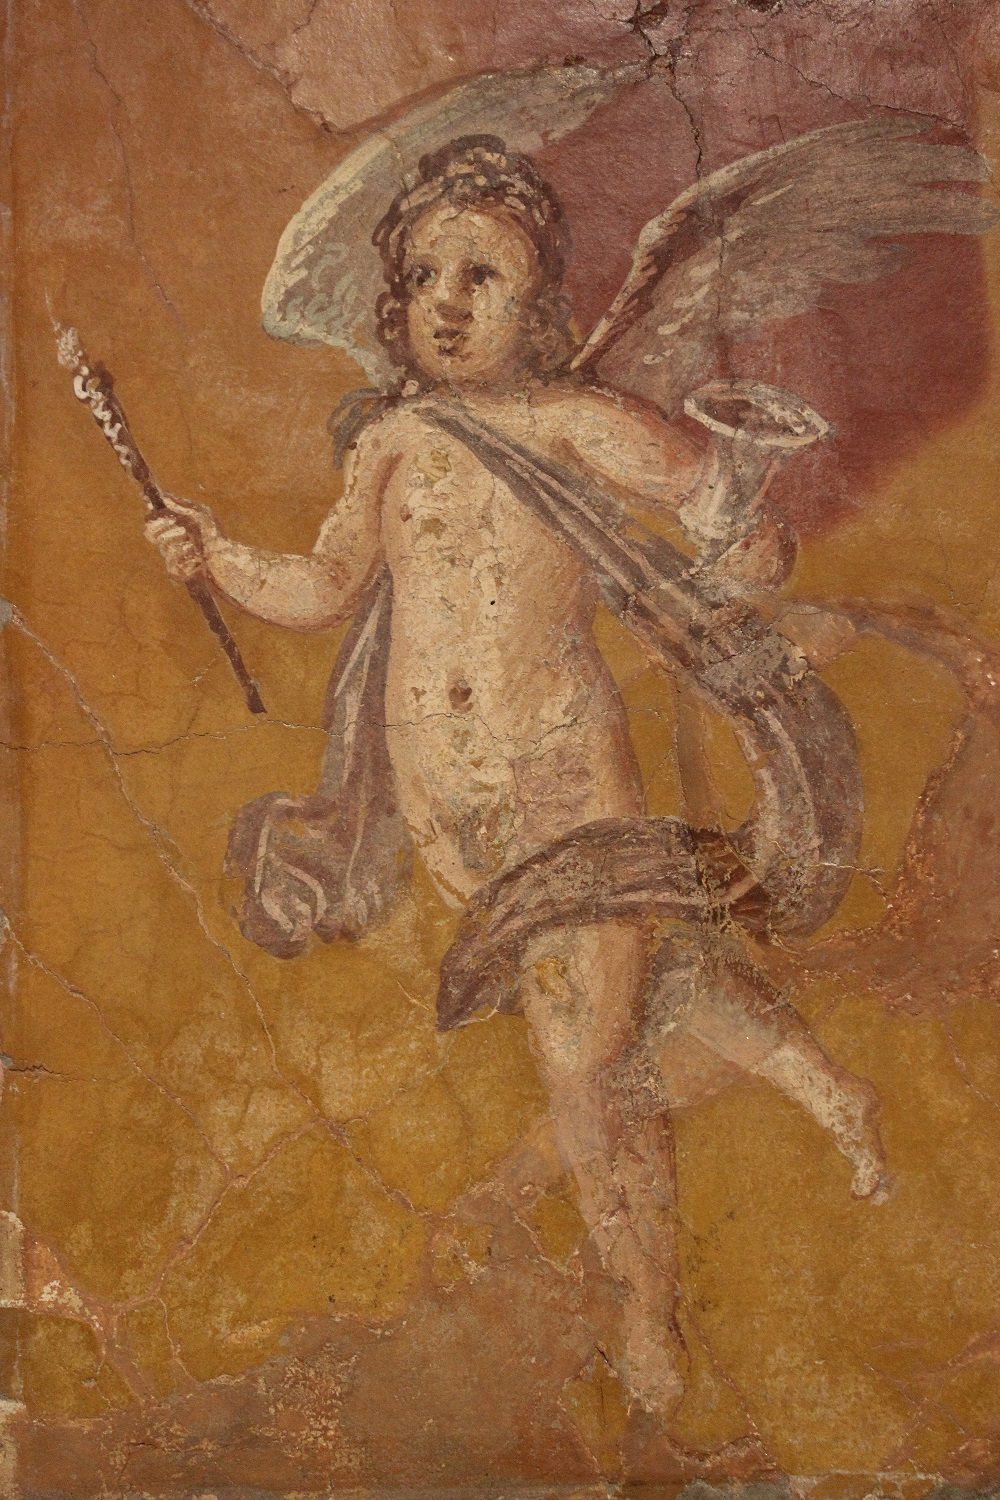 First-century CE fresco of a winged putti | From the Villa dei Papiri, Herculeaneum, currently in the Naples Archaeological Museum |  Image Source